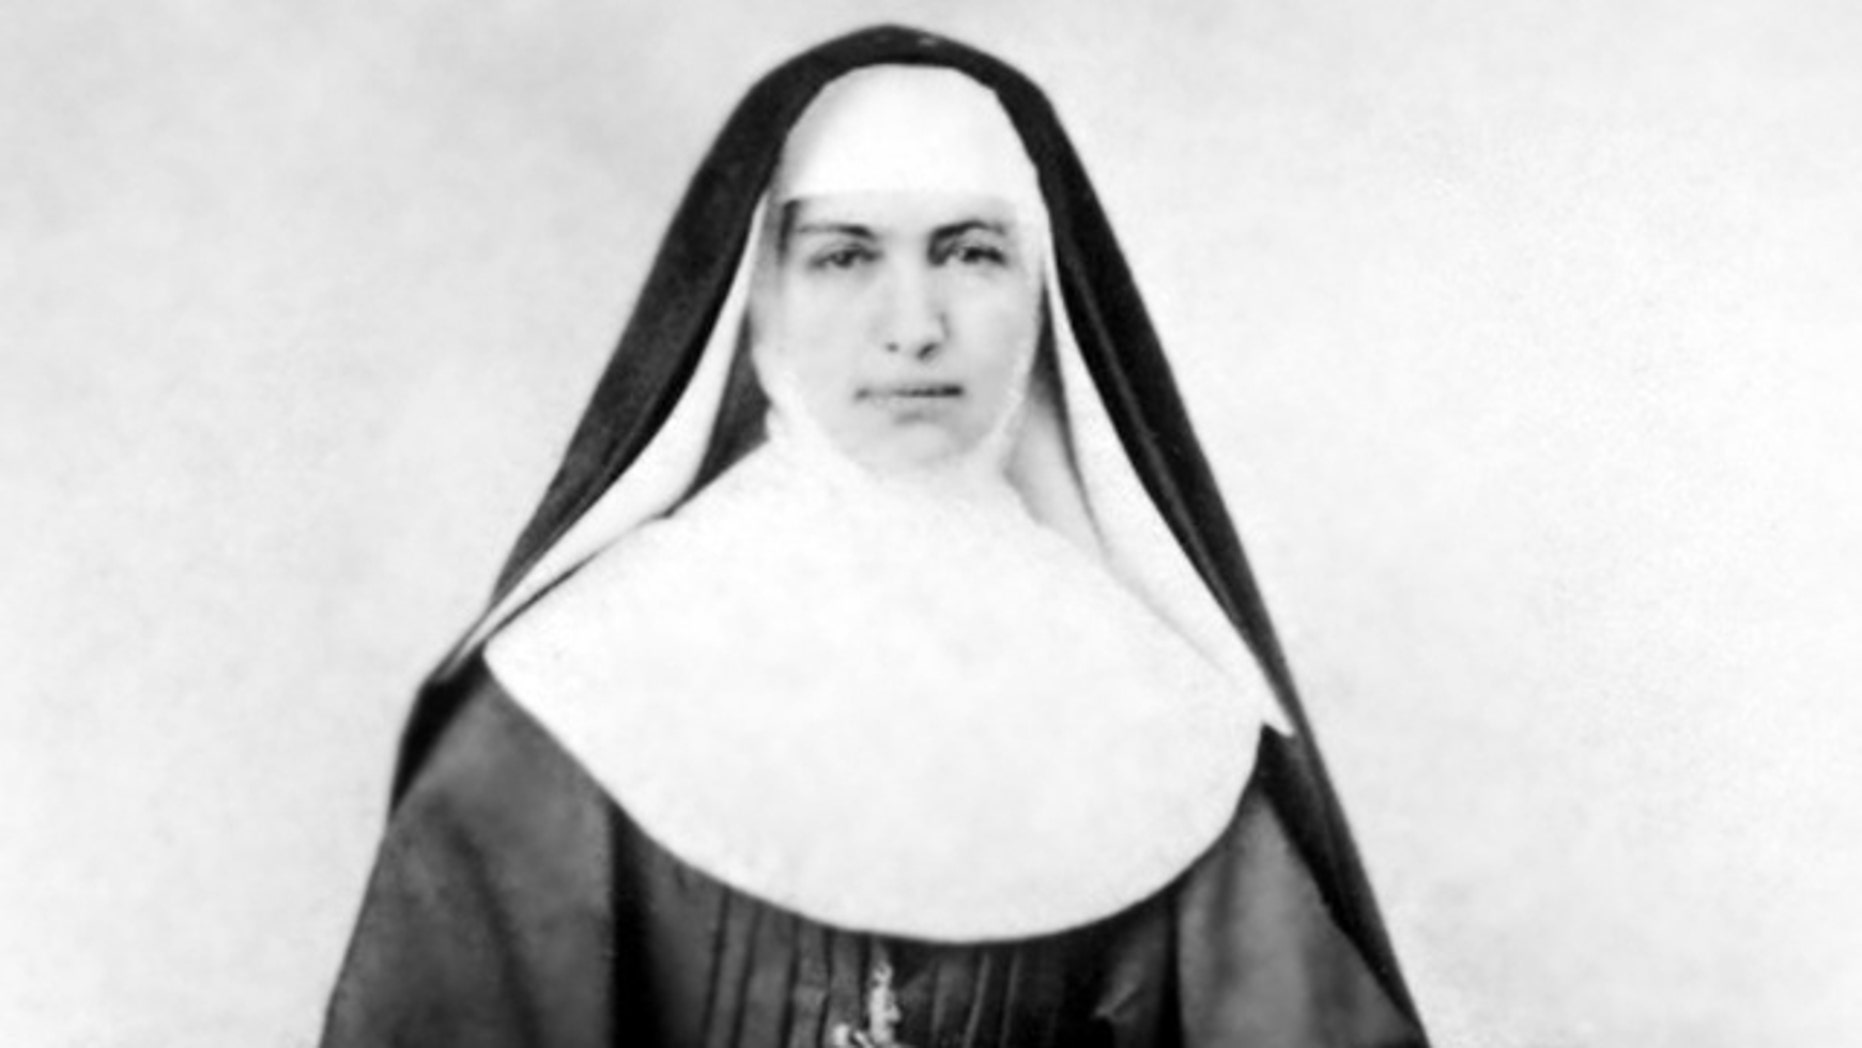 """This 1883 file photo provided by the Sisters of St. Francis of the Neumann Communities shows Mother Marianne Cope, a nun who dedicated her life to caring for exiled leprosy patients on Kalaupapa in Hawaii. Mother Marianne gave her life to caring for Hawaii's leprosy patients, outcasts that others stayed away from at the time out of fear they might contract the disfiguring disease. On Oct. 21, 2012, almost a century after she died at the remote Kalaupapa leprosy settlement in 1918, the Vatican will formally recognize her as a saint. Bishop Larry Silva of the Honolulu diocese says she's """"an inspiration to us to do the hard work, to not always do the glory work, but to roll up our sleeves and do what needs to be done for the sake of our brothers and sisters."""" (AP/Sisters of St. Francis of the Neumann Communities)"""